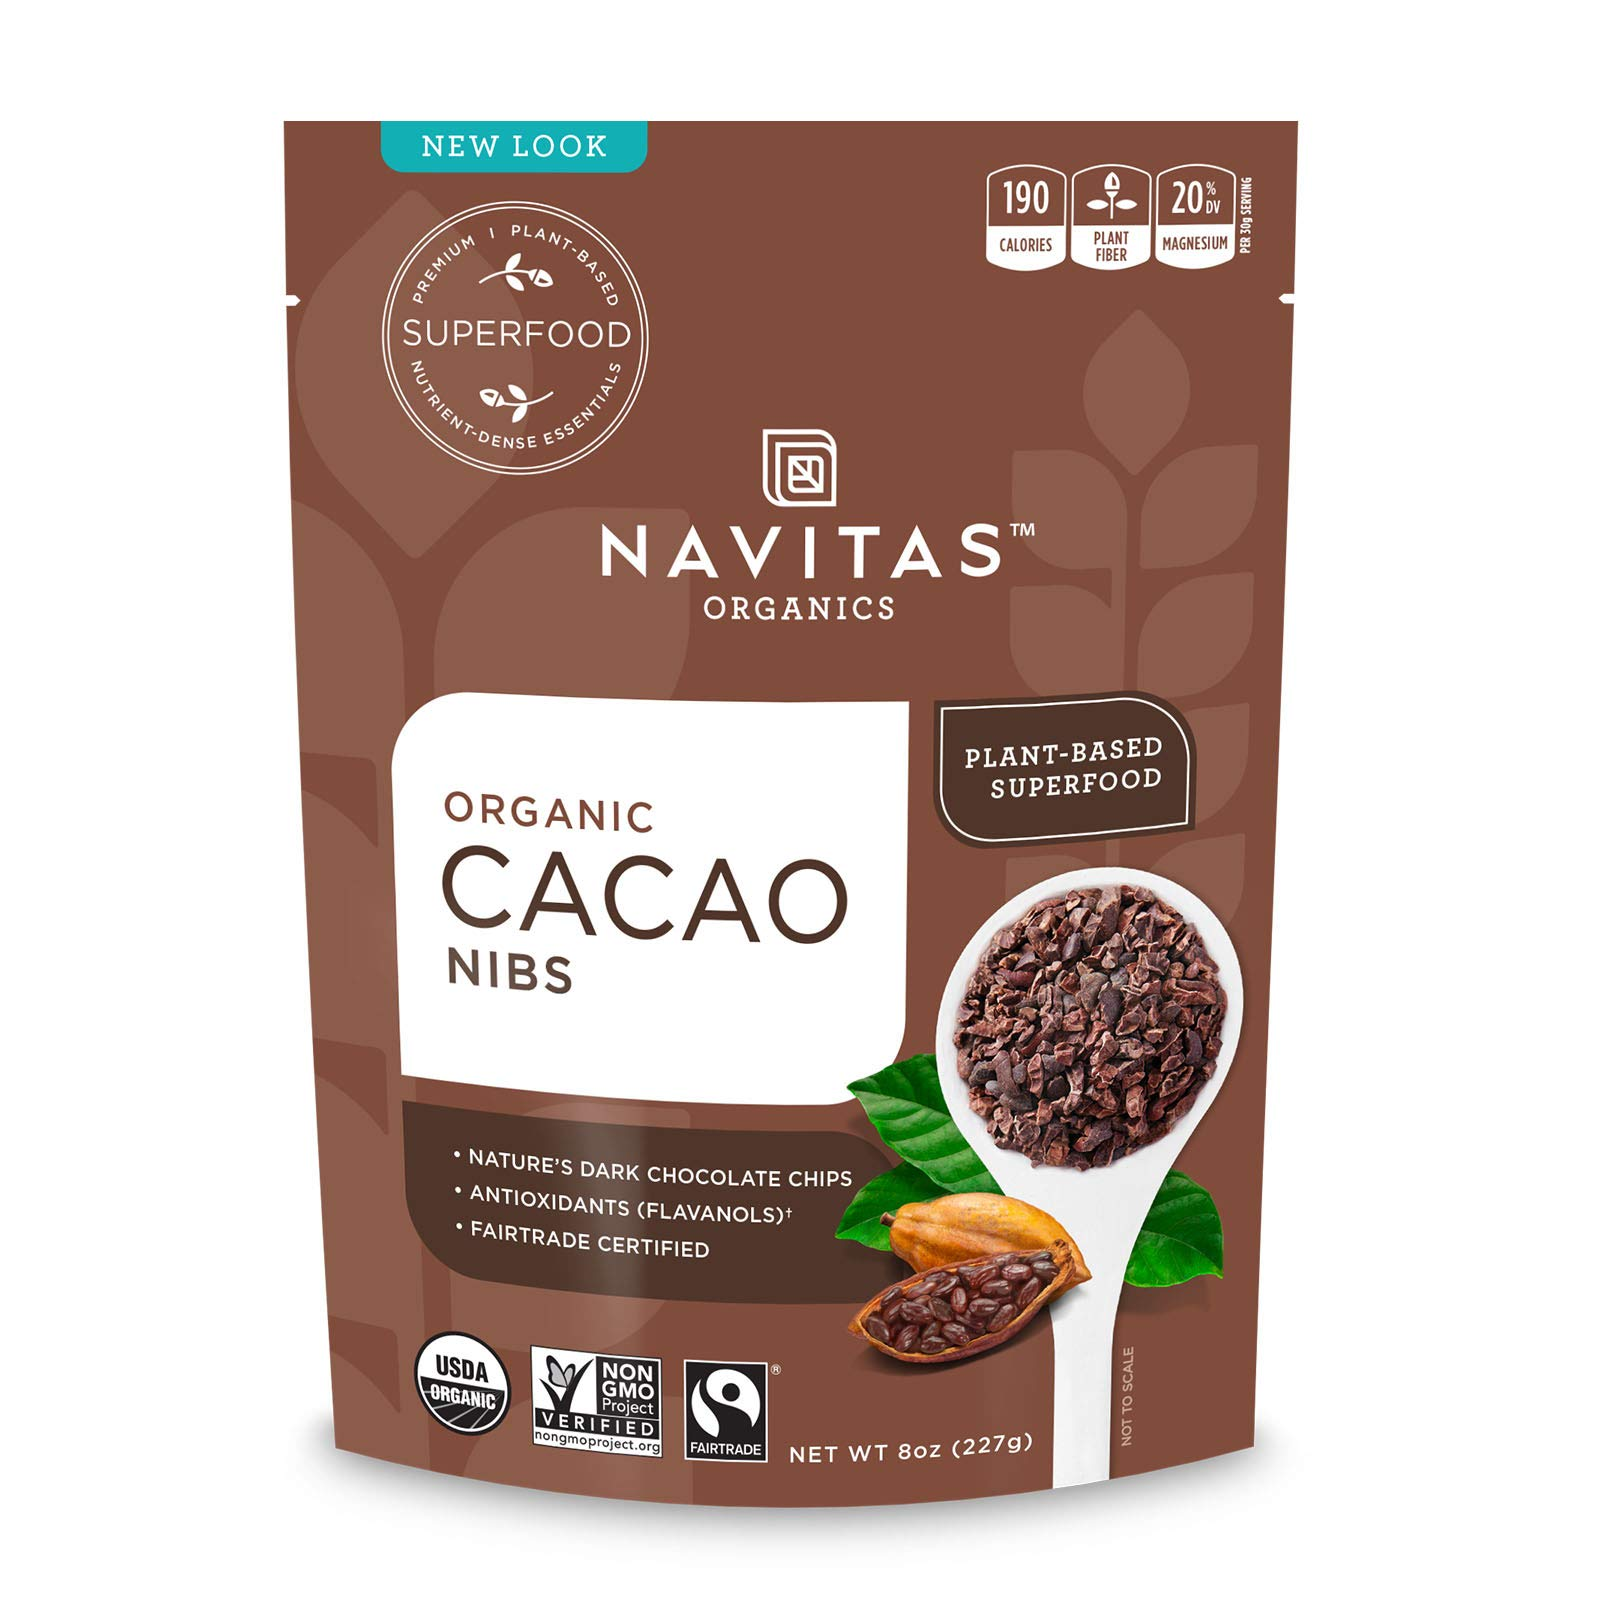 Navitas Organics Raw Cacao Nibs, 8 oz. Bag, 8 Servings — Organic, Non-GMO, Fair Trade, Gluten-Free